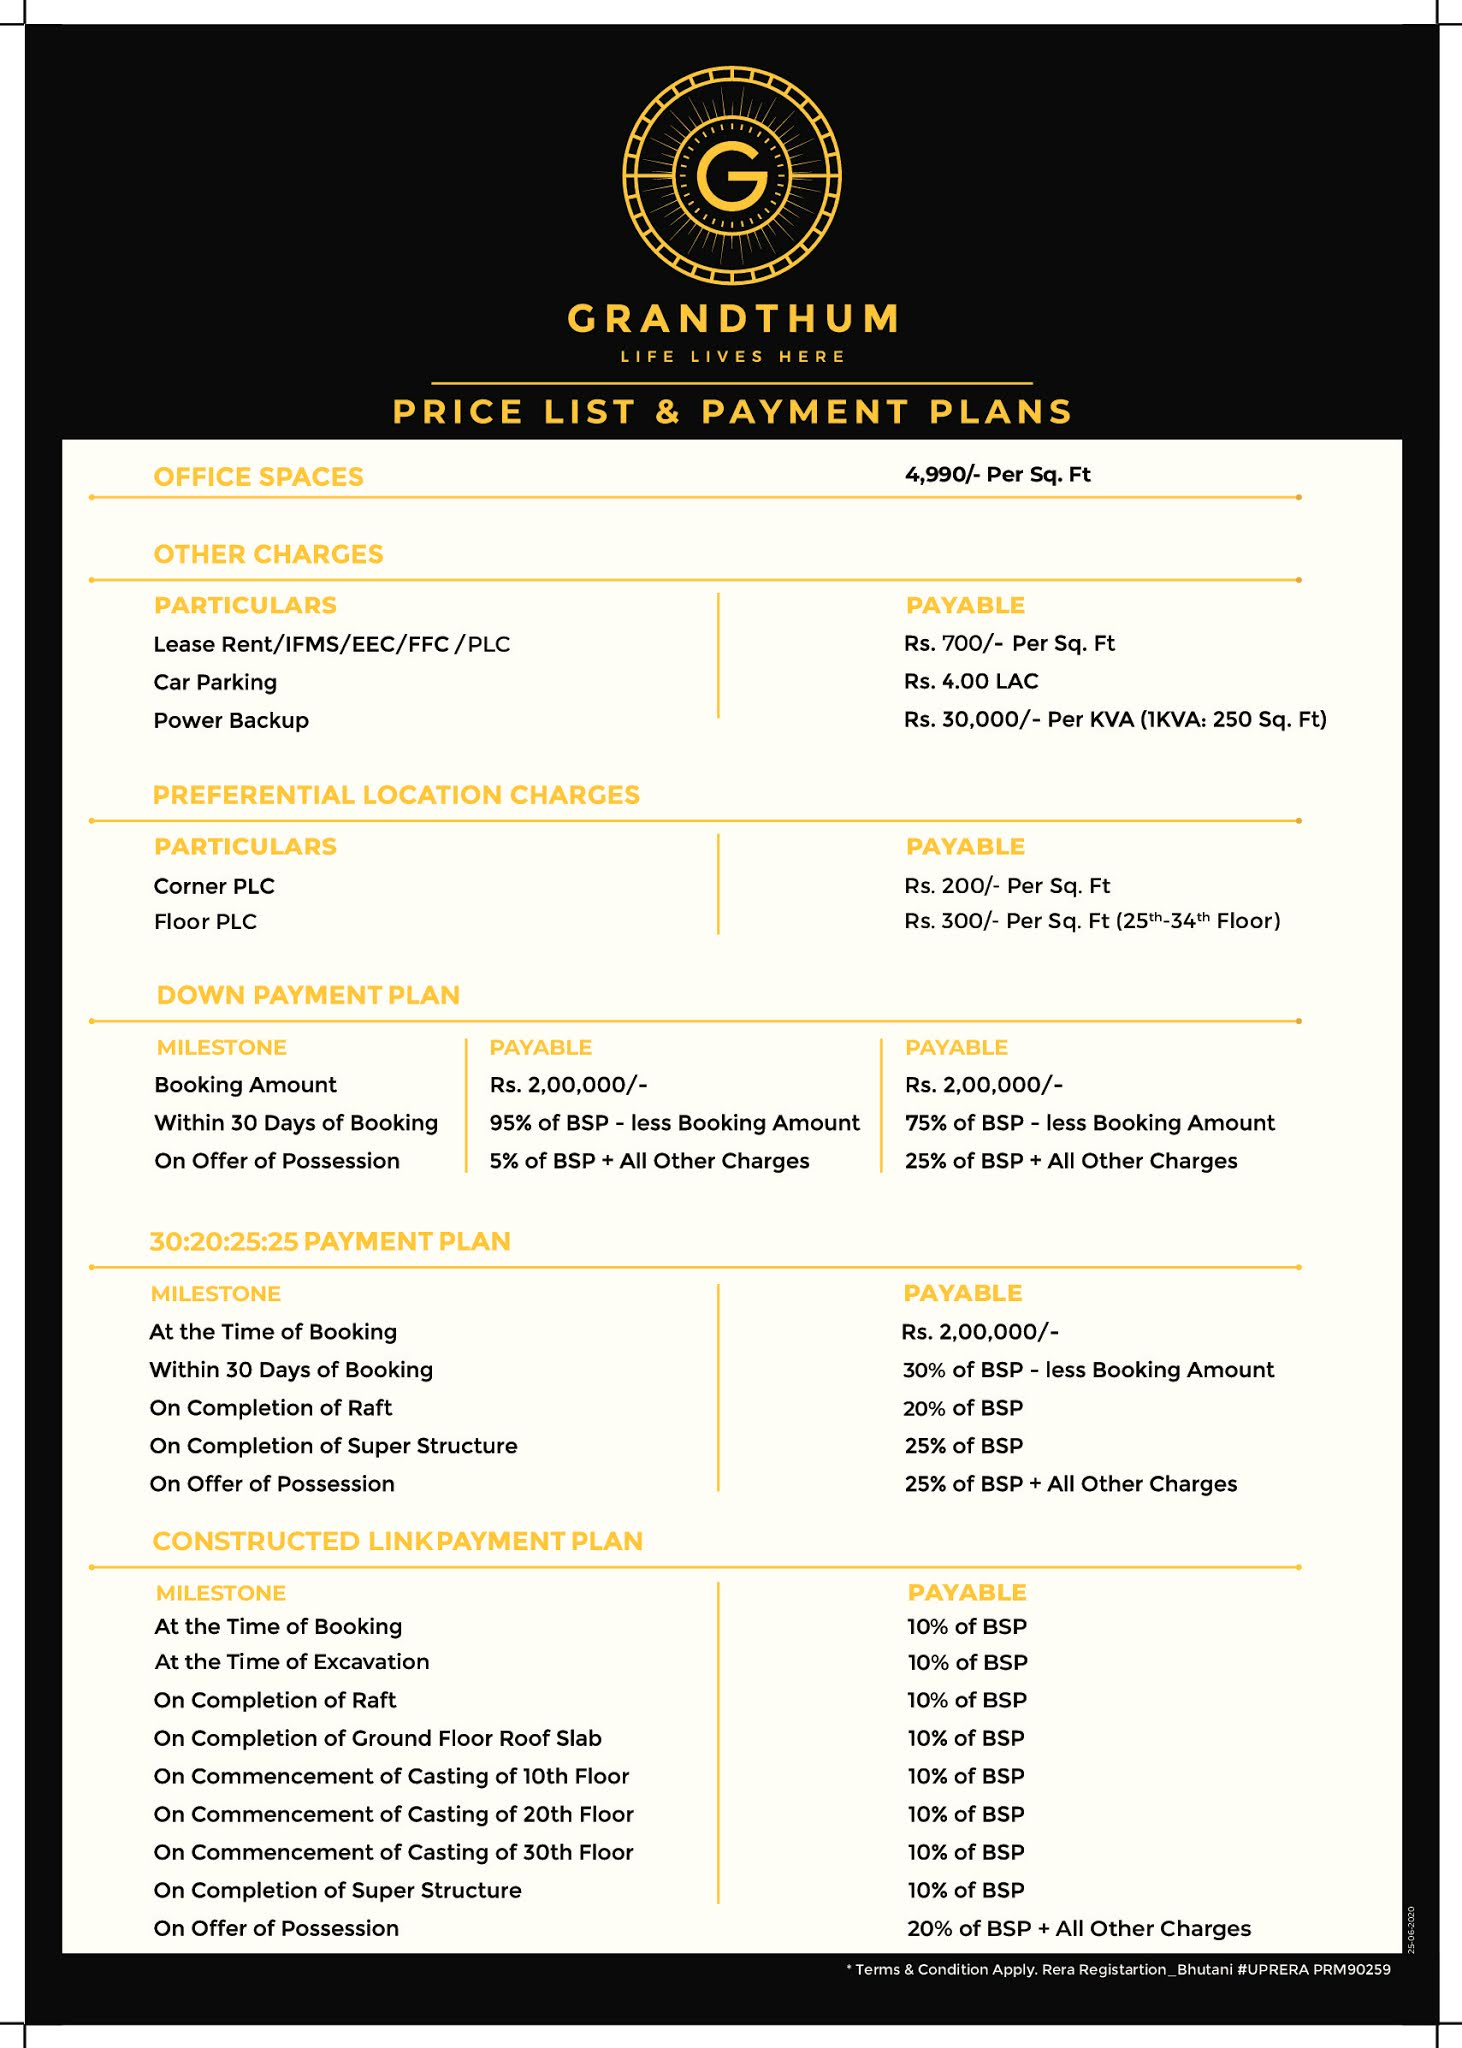 Bhutani-Grandthum-office-space-pricelist